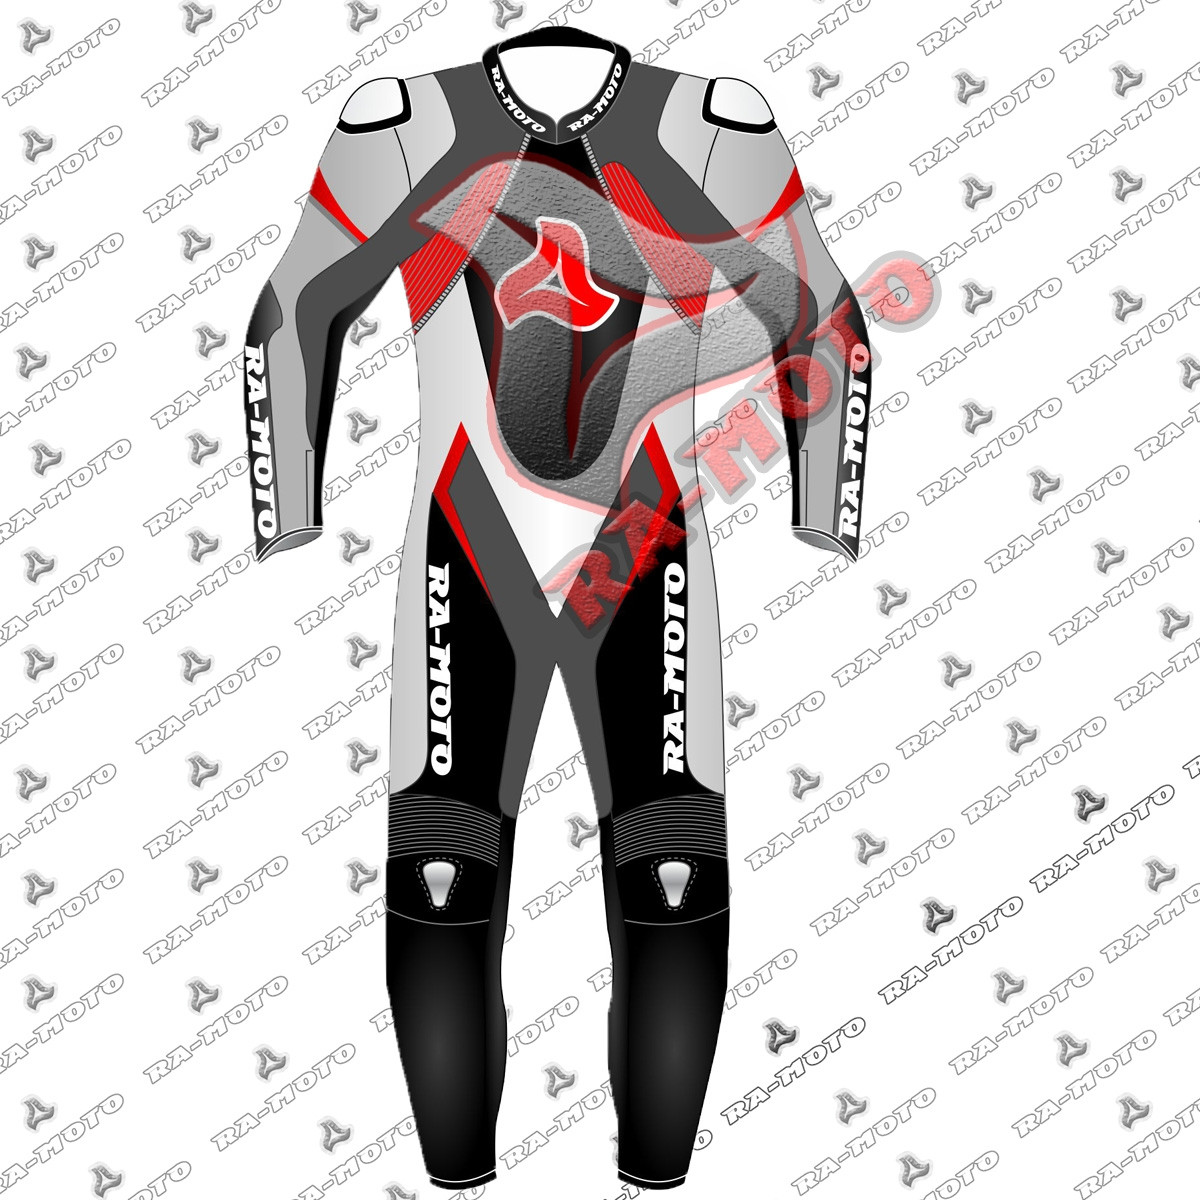 RA-15312 Fire SideCar Racing leather  suit